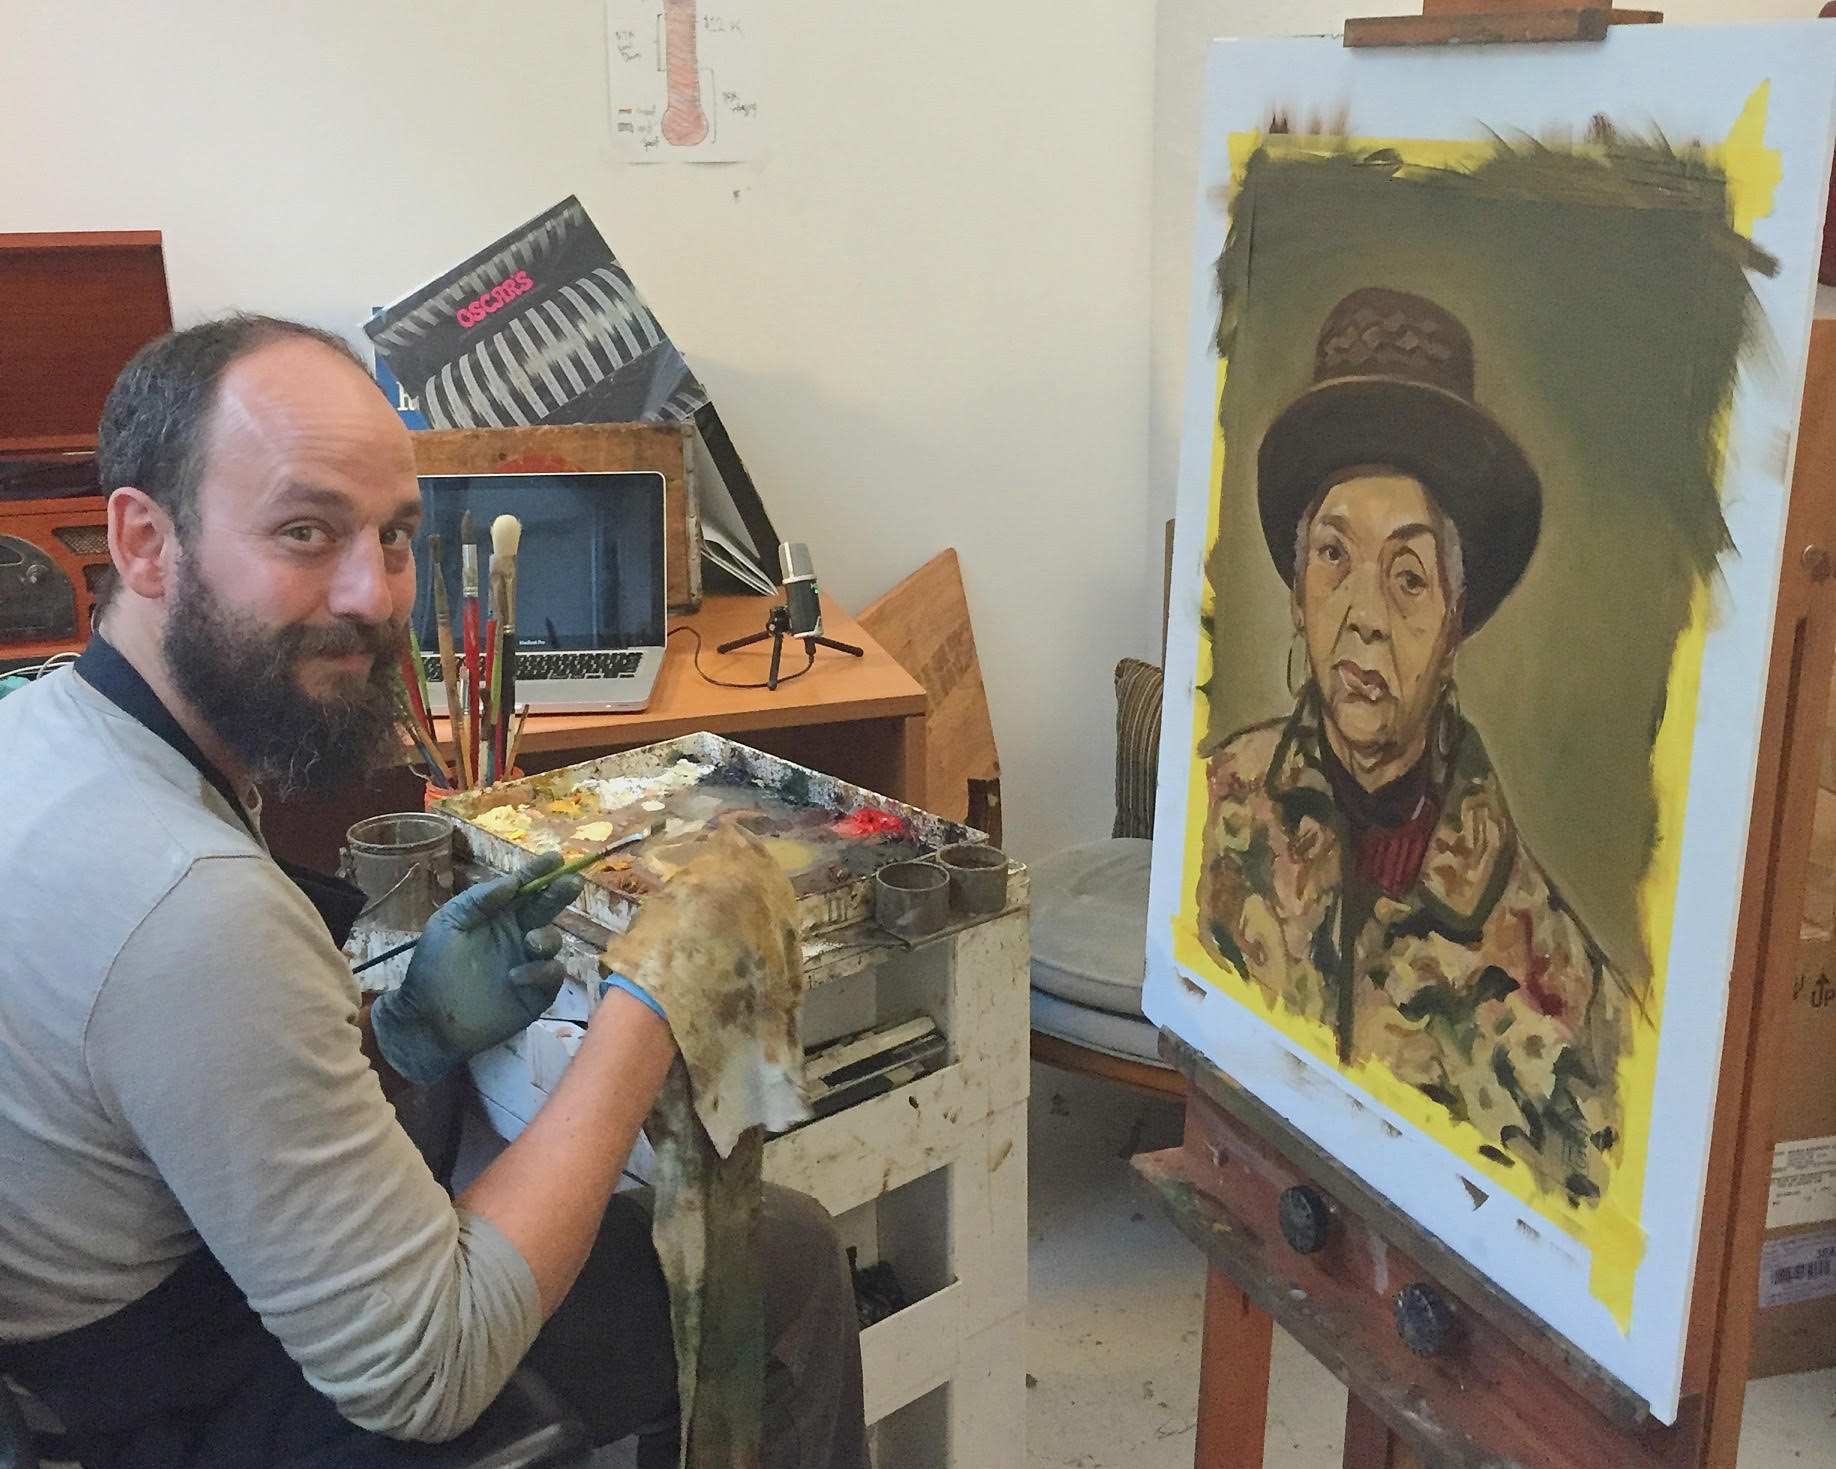 Local Artist Captures Crown Heights Community On Canvas